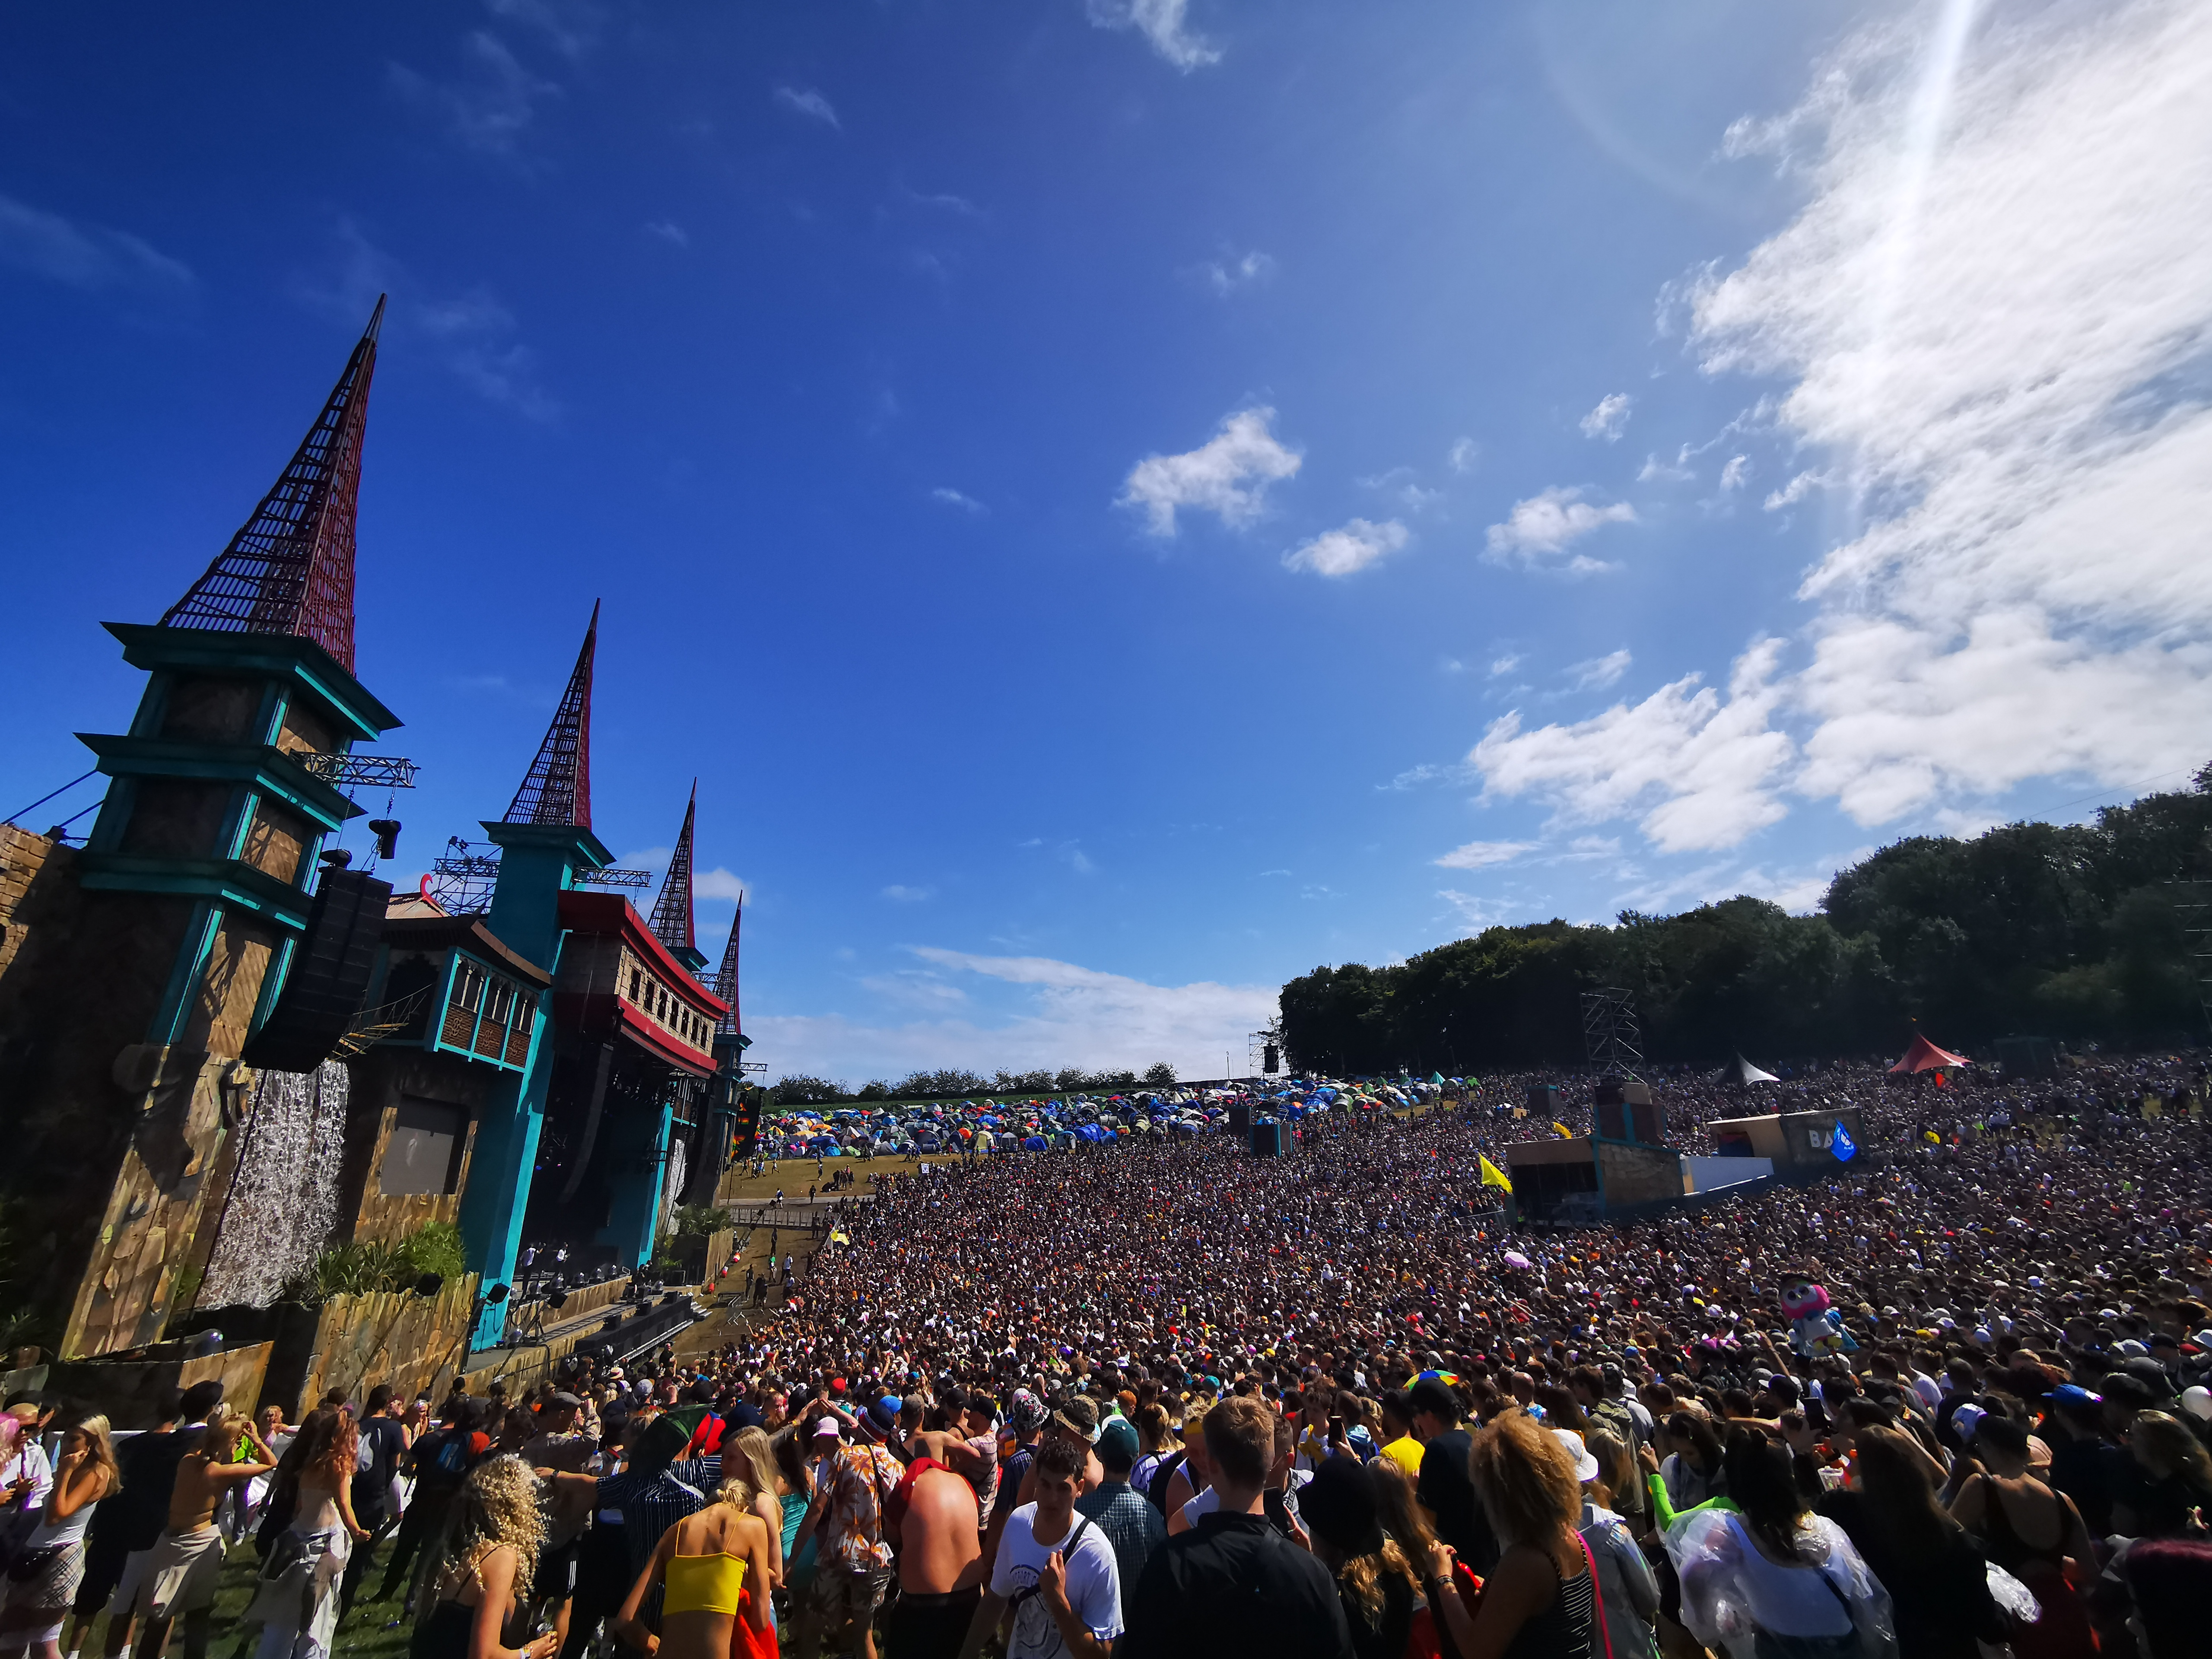 Boomtown Fair 2019 opening ceremony Lion's Den stage sun